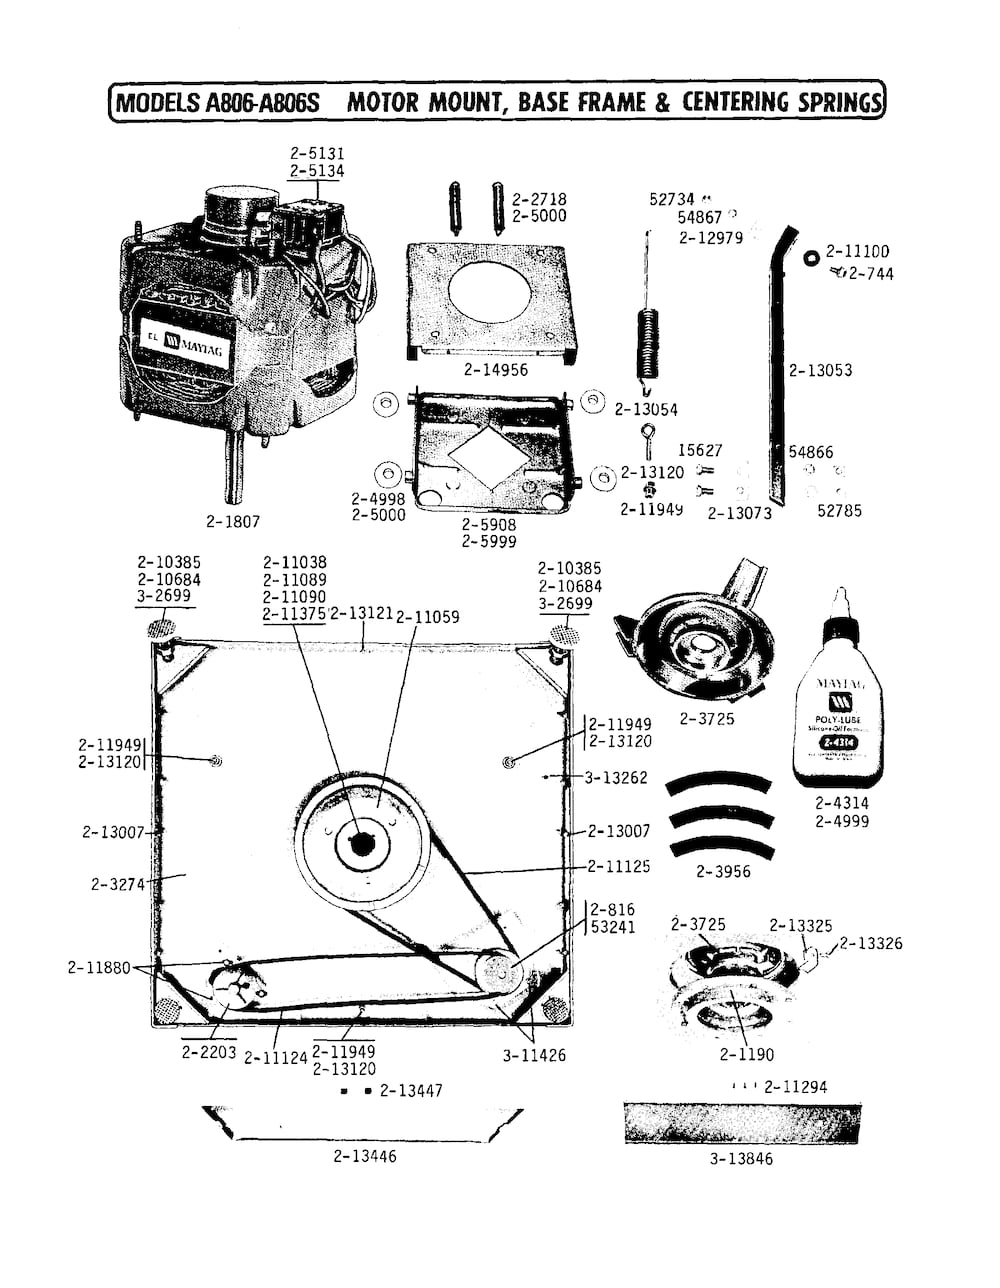 Washer Pressure Switch Location together with T26551988 Samsung washing machine model wa95w9 also Appliance Parts Appliance Repair Metro Phoenix Area Intended For Fisher Paykel Dishwasher Parts Plan additionally Coloring likewise Wiring Diagram For Maytag Refrigerator. on samsung washer parts diagram